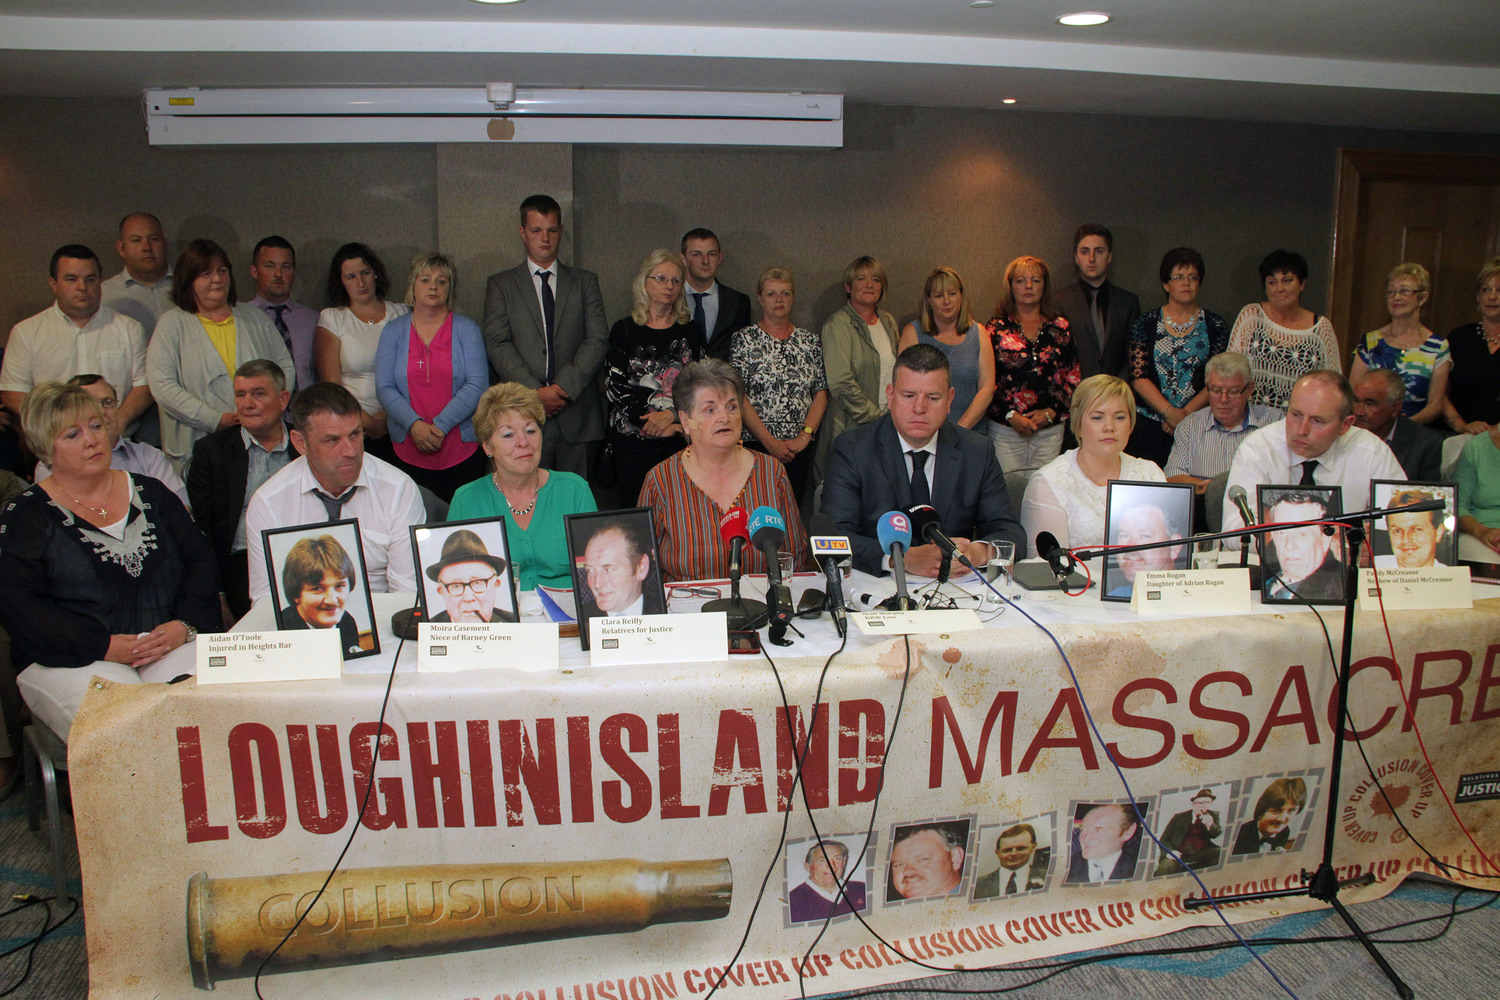 The Loughinisland families and their legal representative hold a press conference